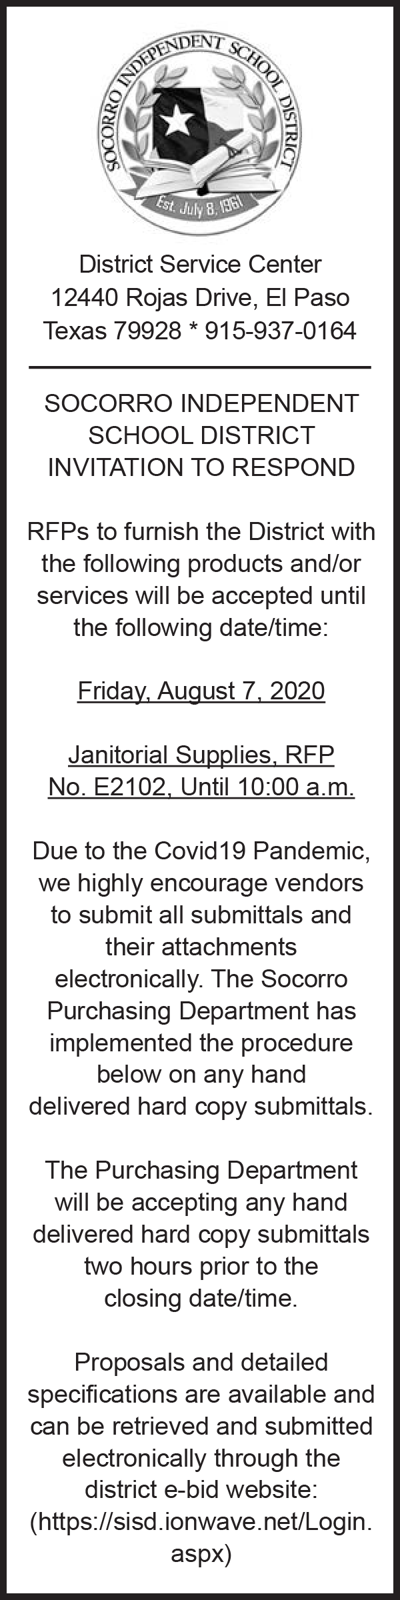 SISD Legal 2x8 (EPINC) 7-12-20.png